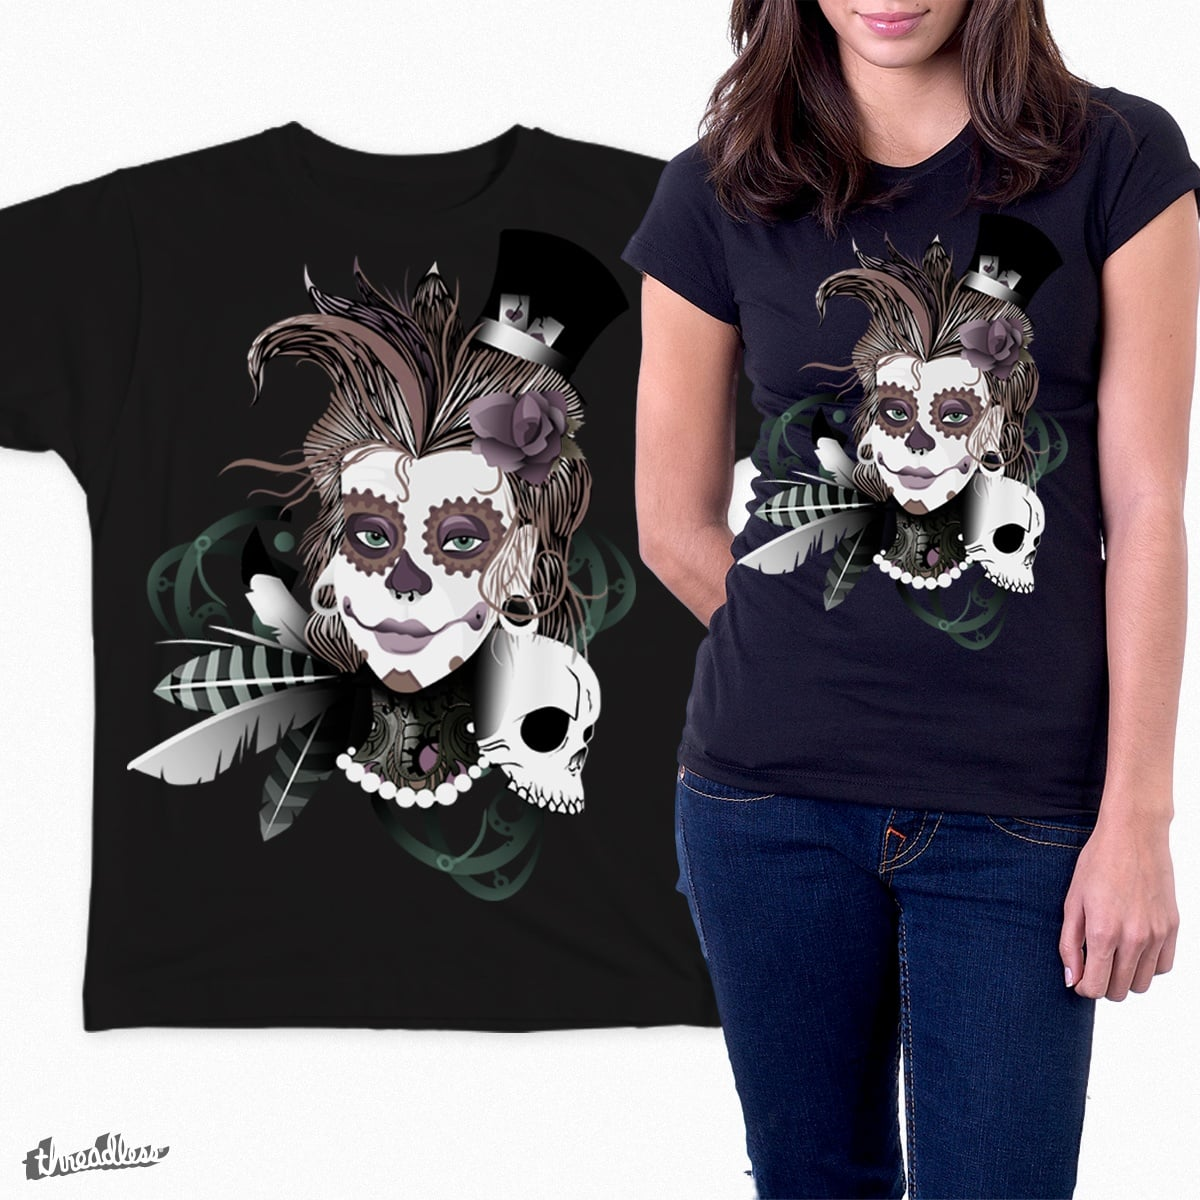 Dia de los muertos  by SpiritedCoast on Threadless